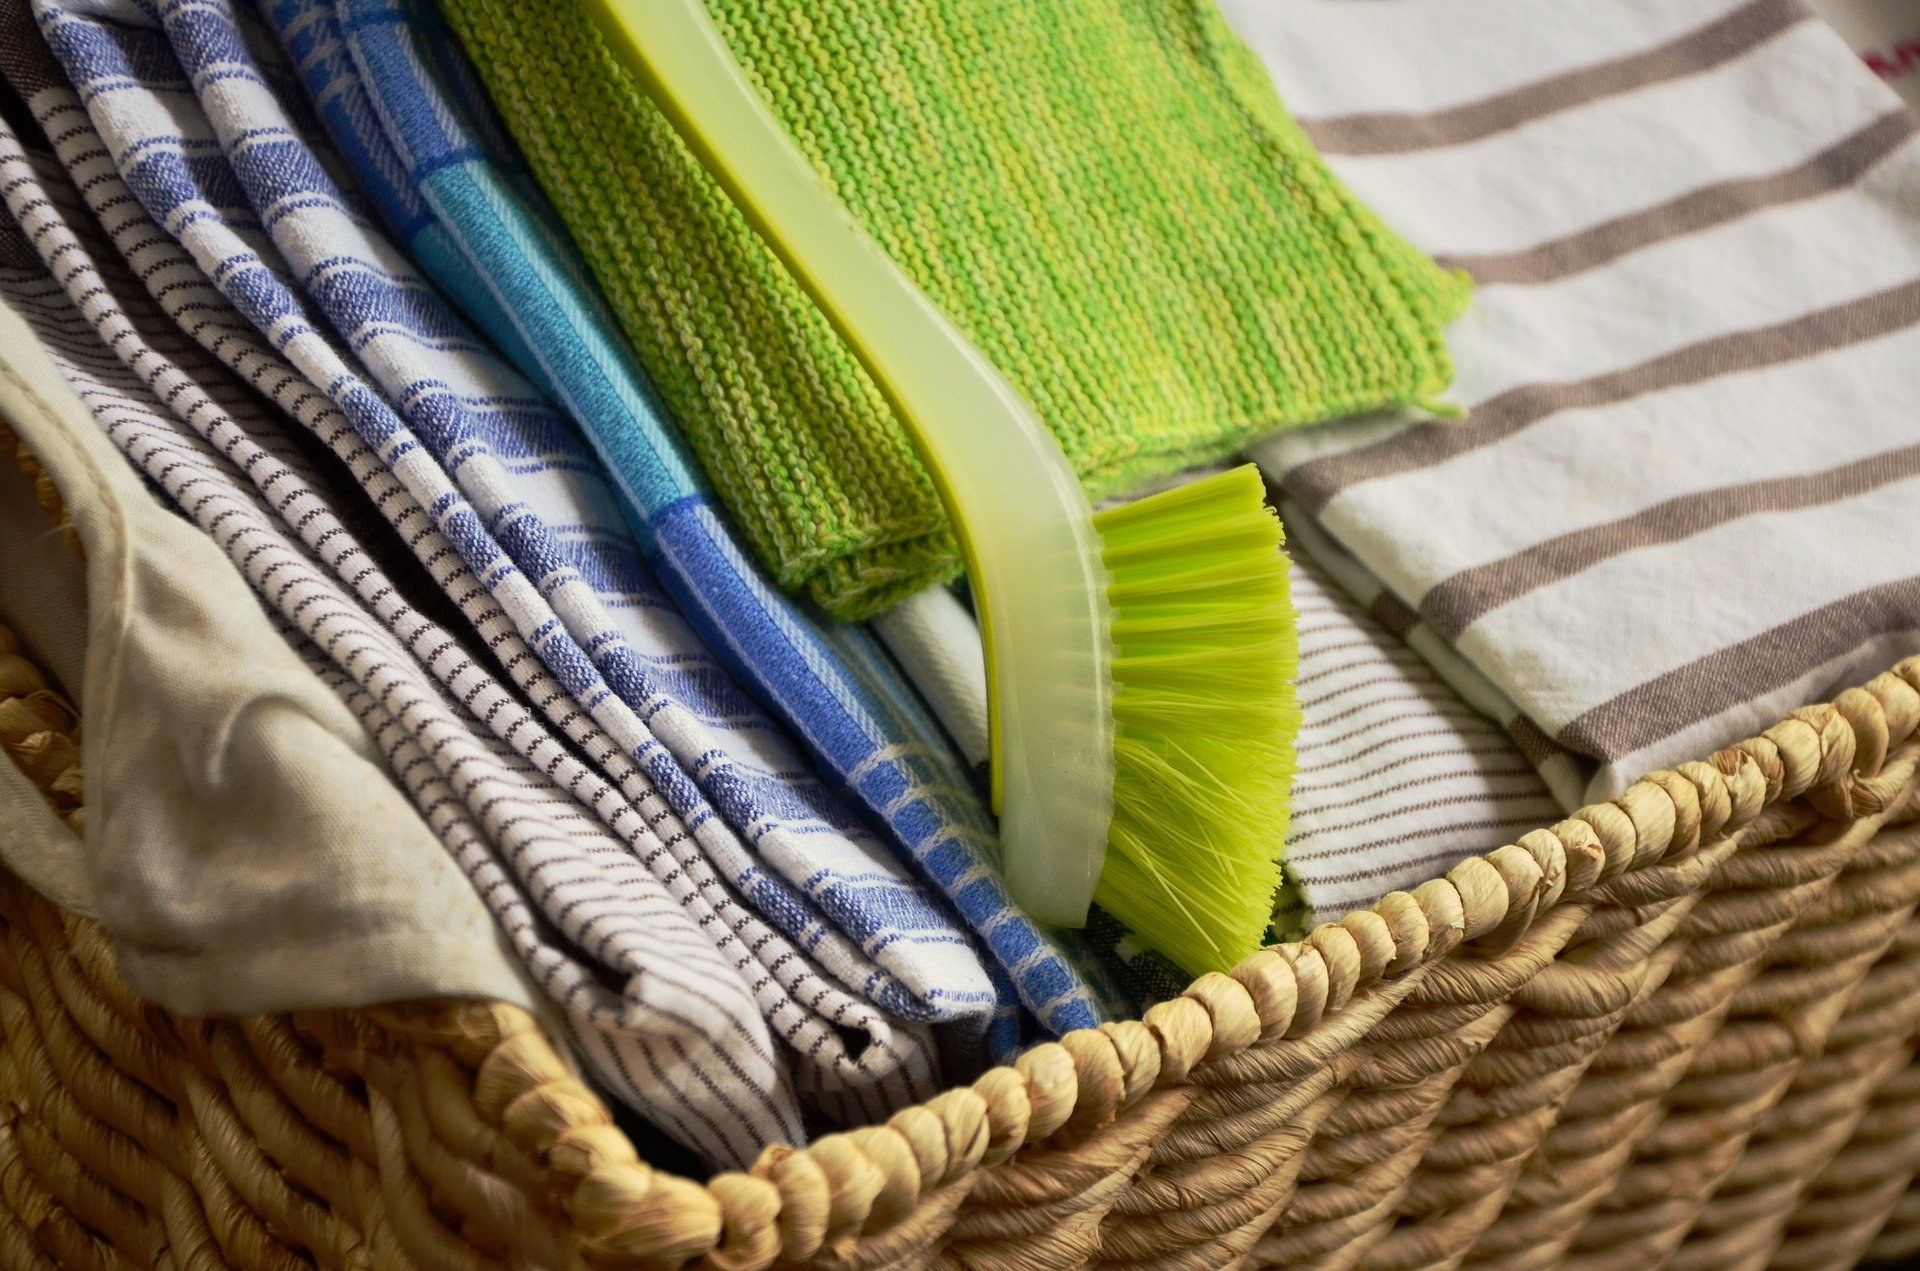 How your kitchen towels can cause food poisoning